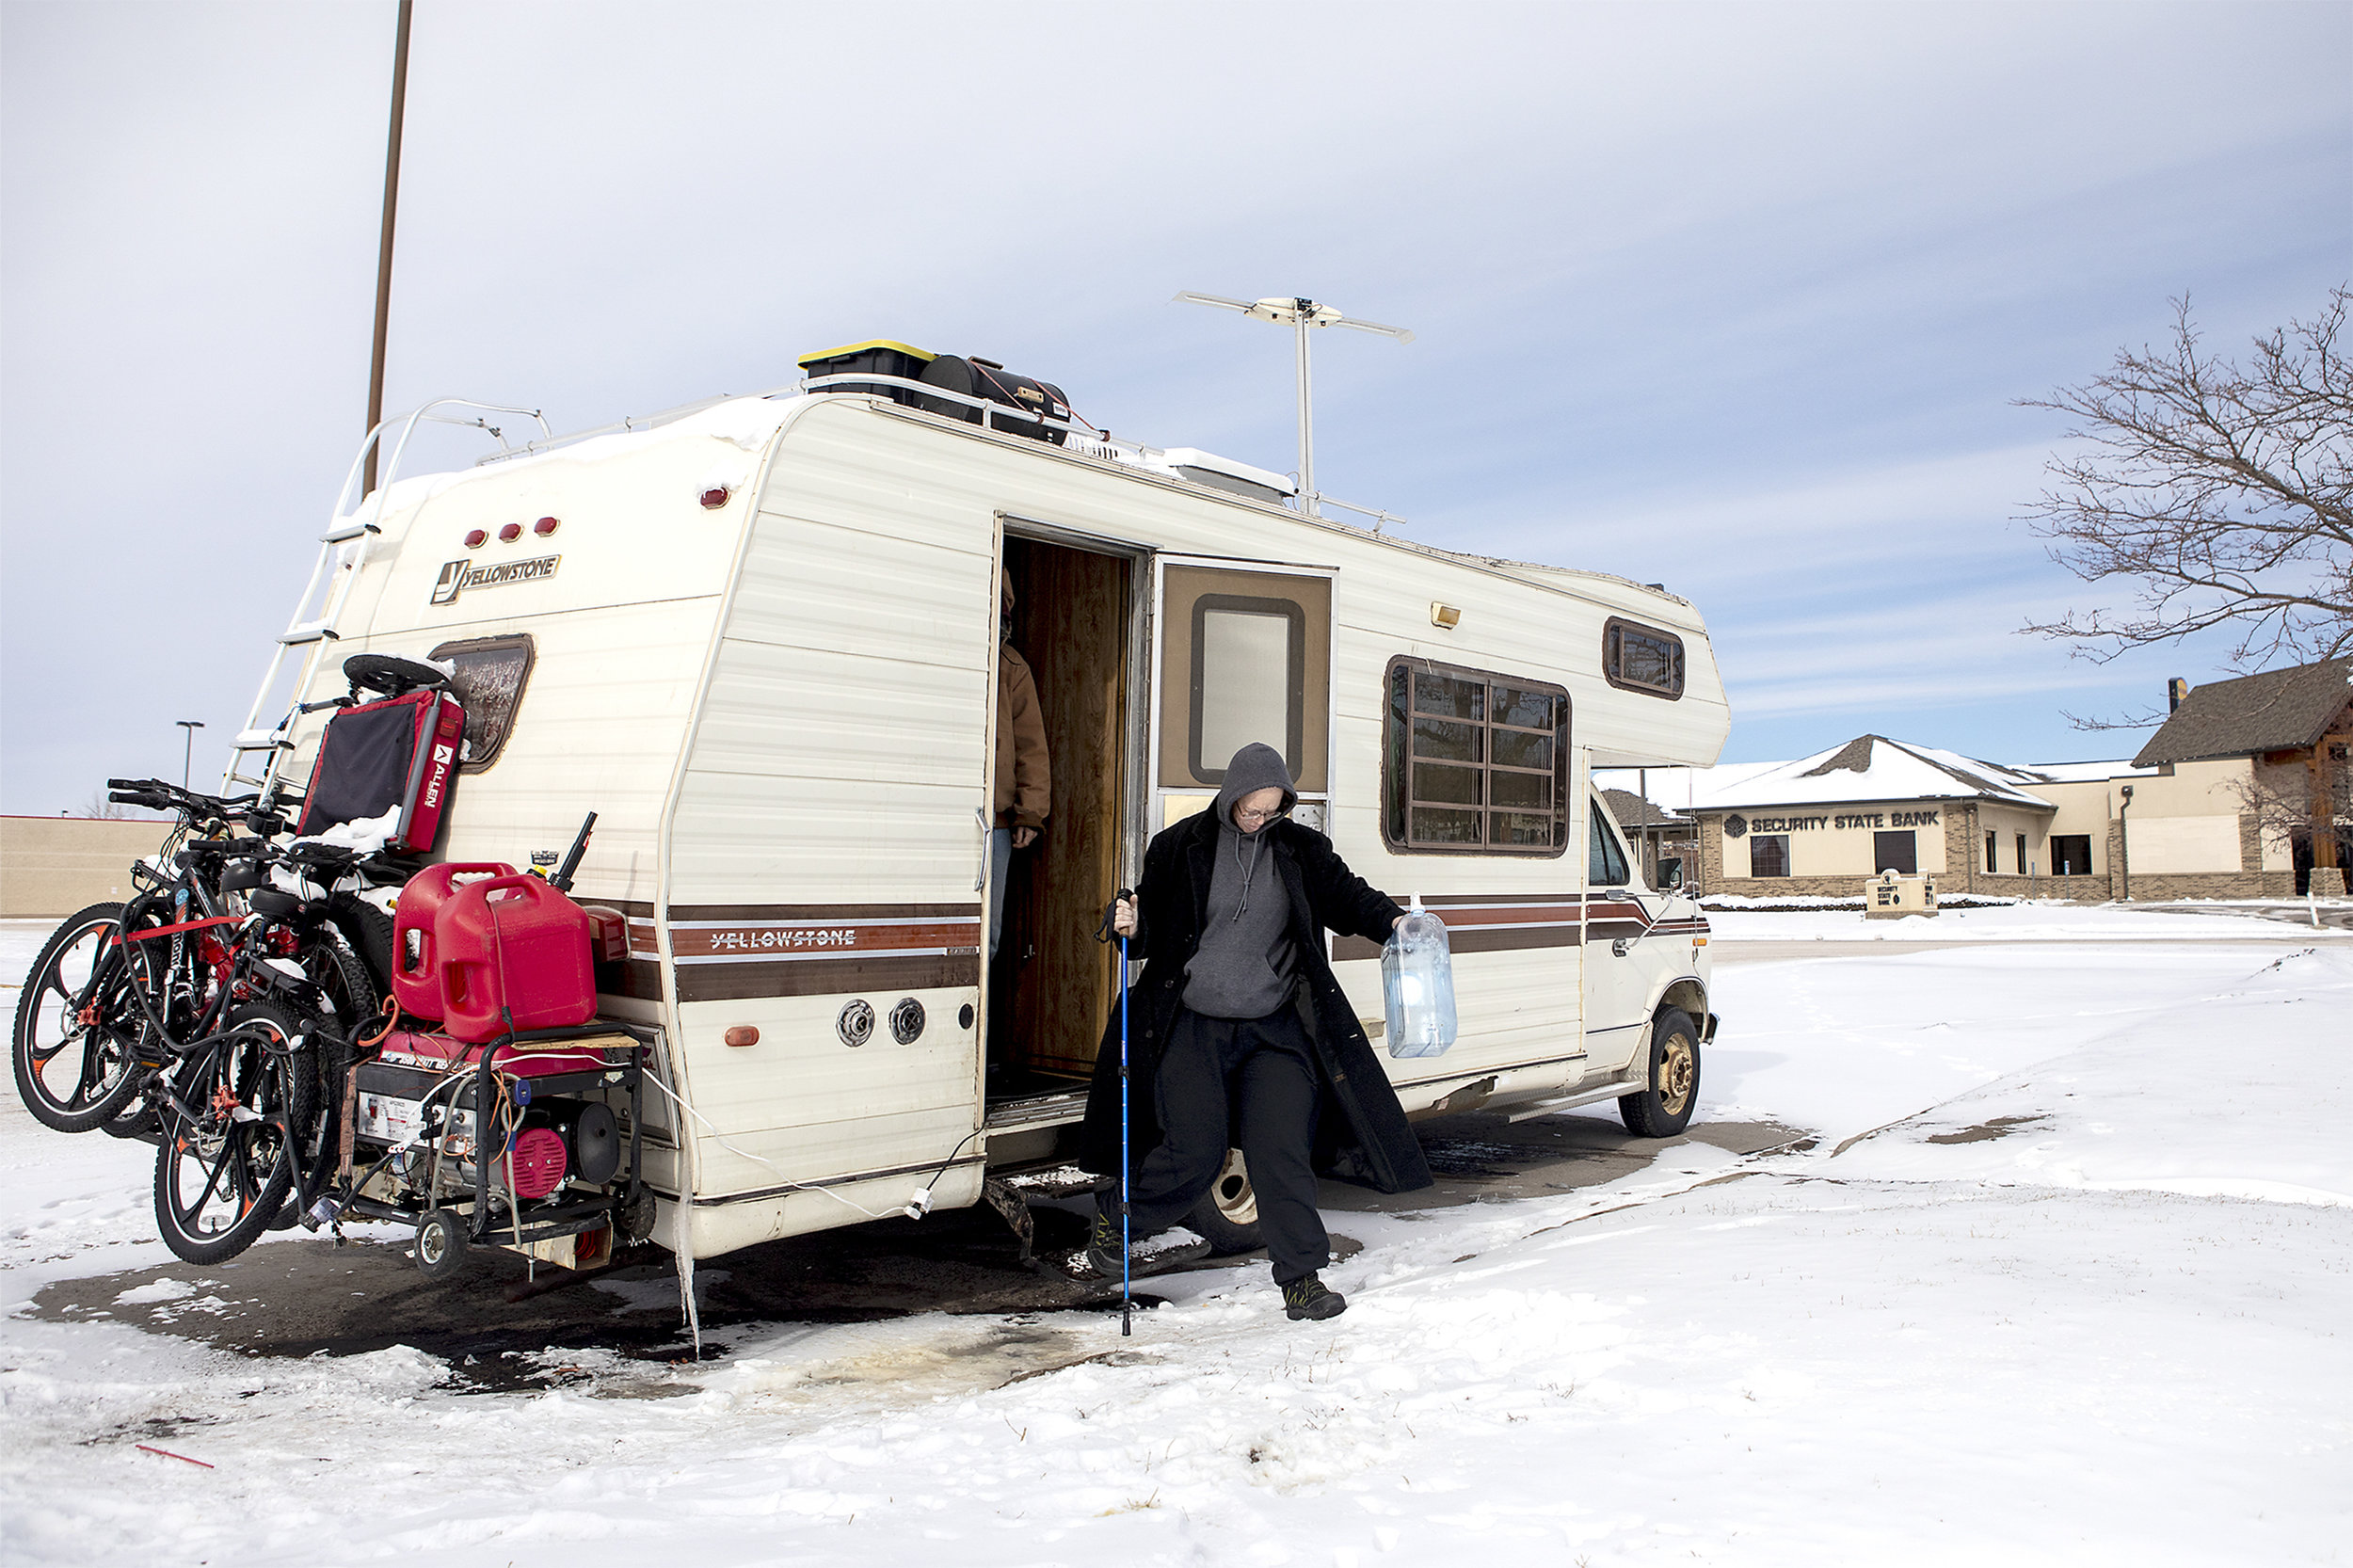 Andrea and Jeff exit their mobile home for a trip to Flying J's to get water. The family hopes to be able to travel from place to place after their home is repaired.